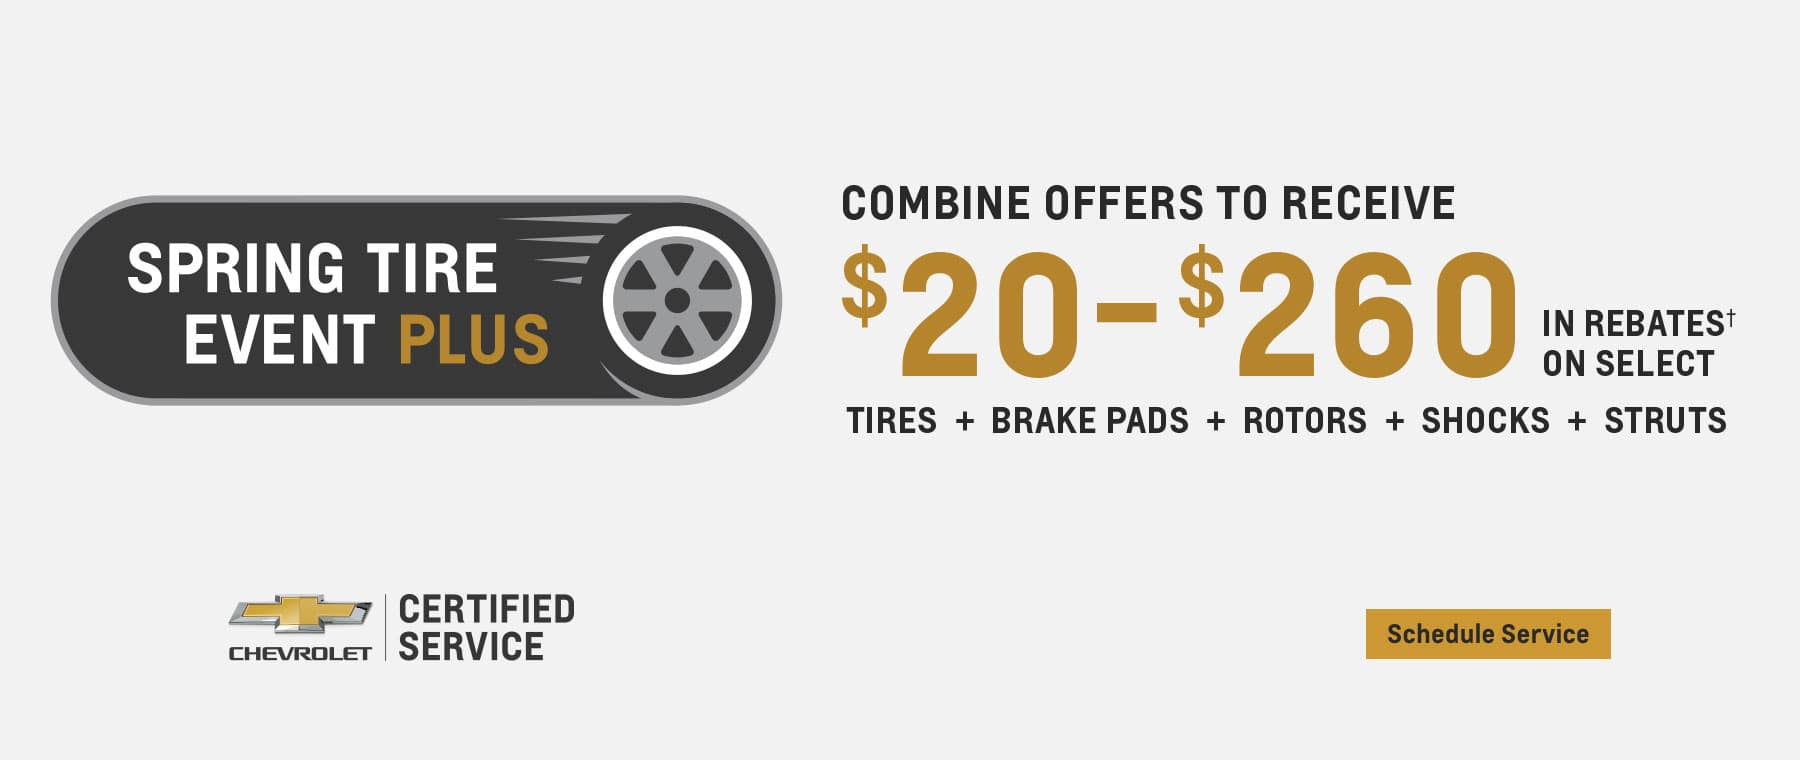 SPRING TIRE EVENT PLUS COMBINE OFFERS TO RECEIVE $20-$260 IN REBATES ON SELECT TIRES + BRAKE PADS + ROTORS + SHOCKS + STRUTS